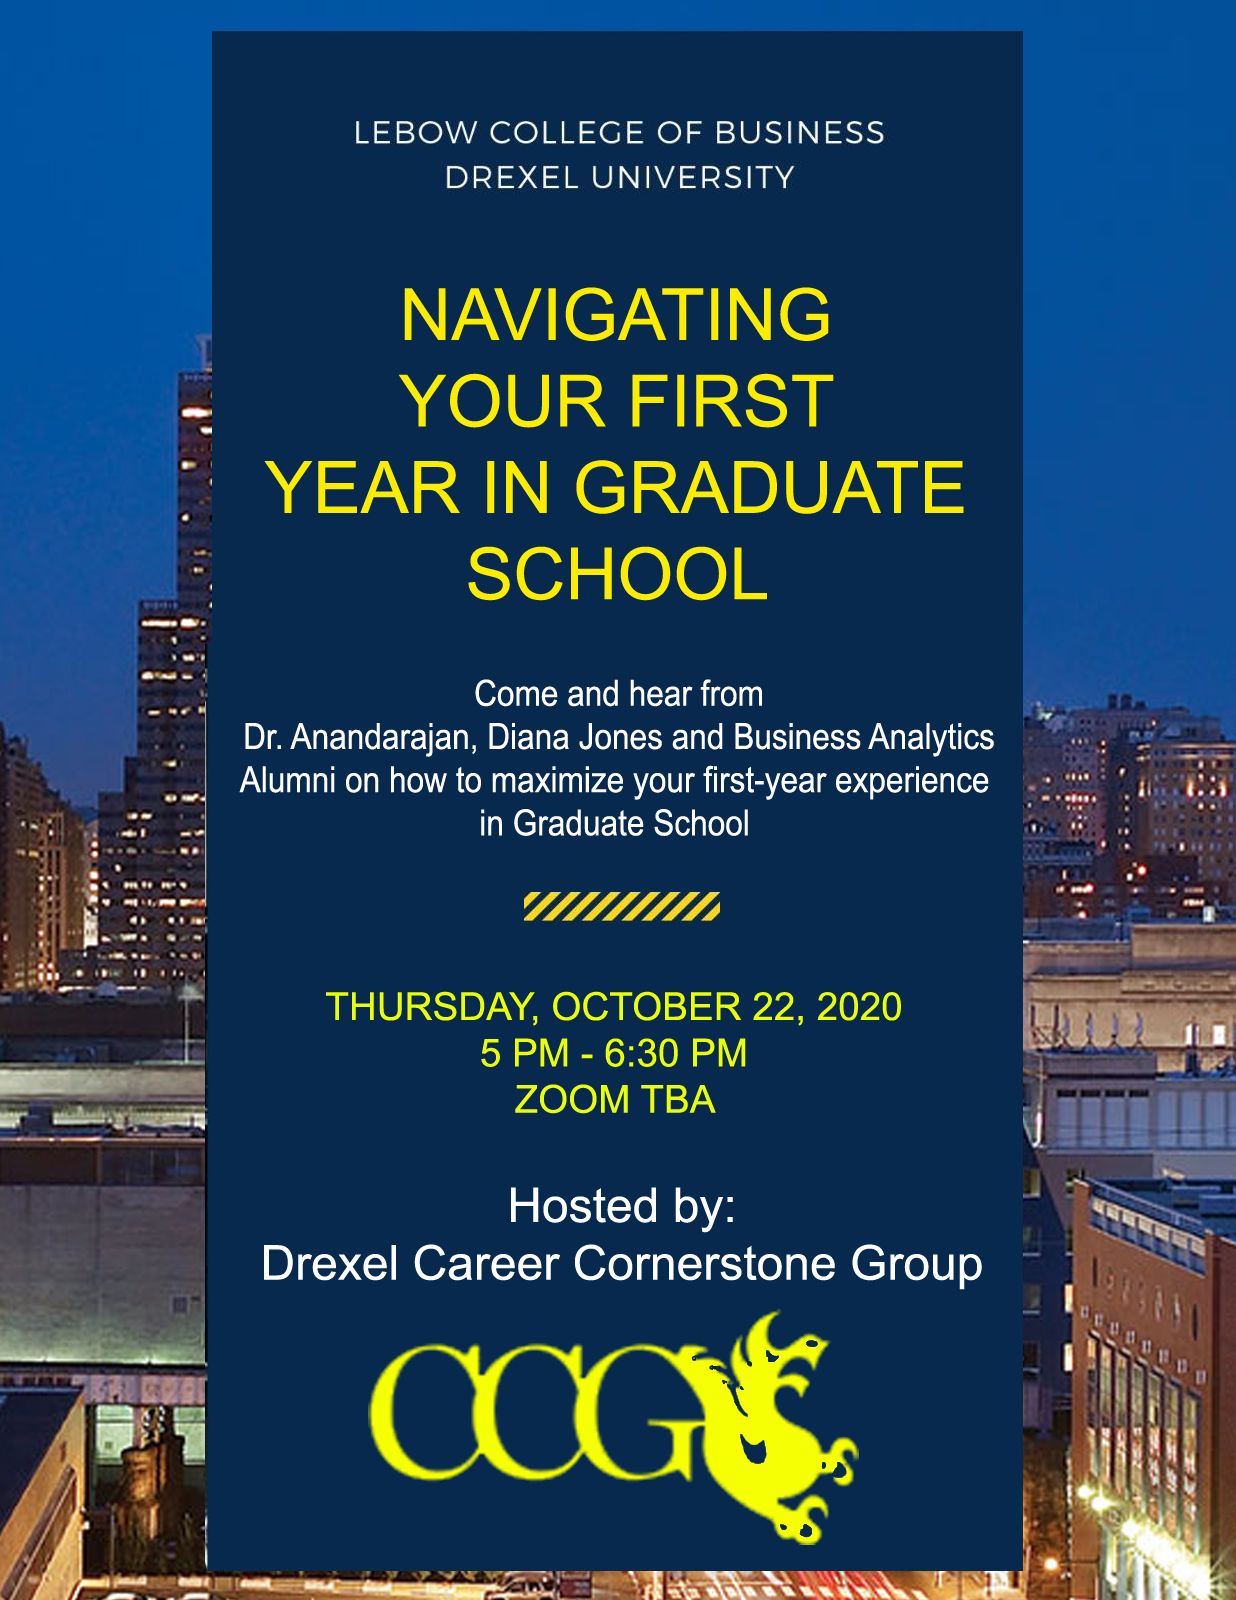 Navigating your first year in graduate school: OCTOBER 22ND AT 5pm